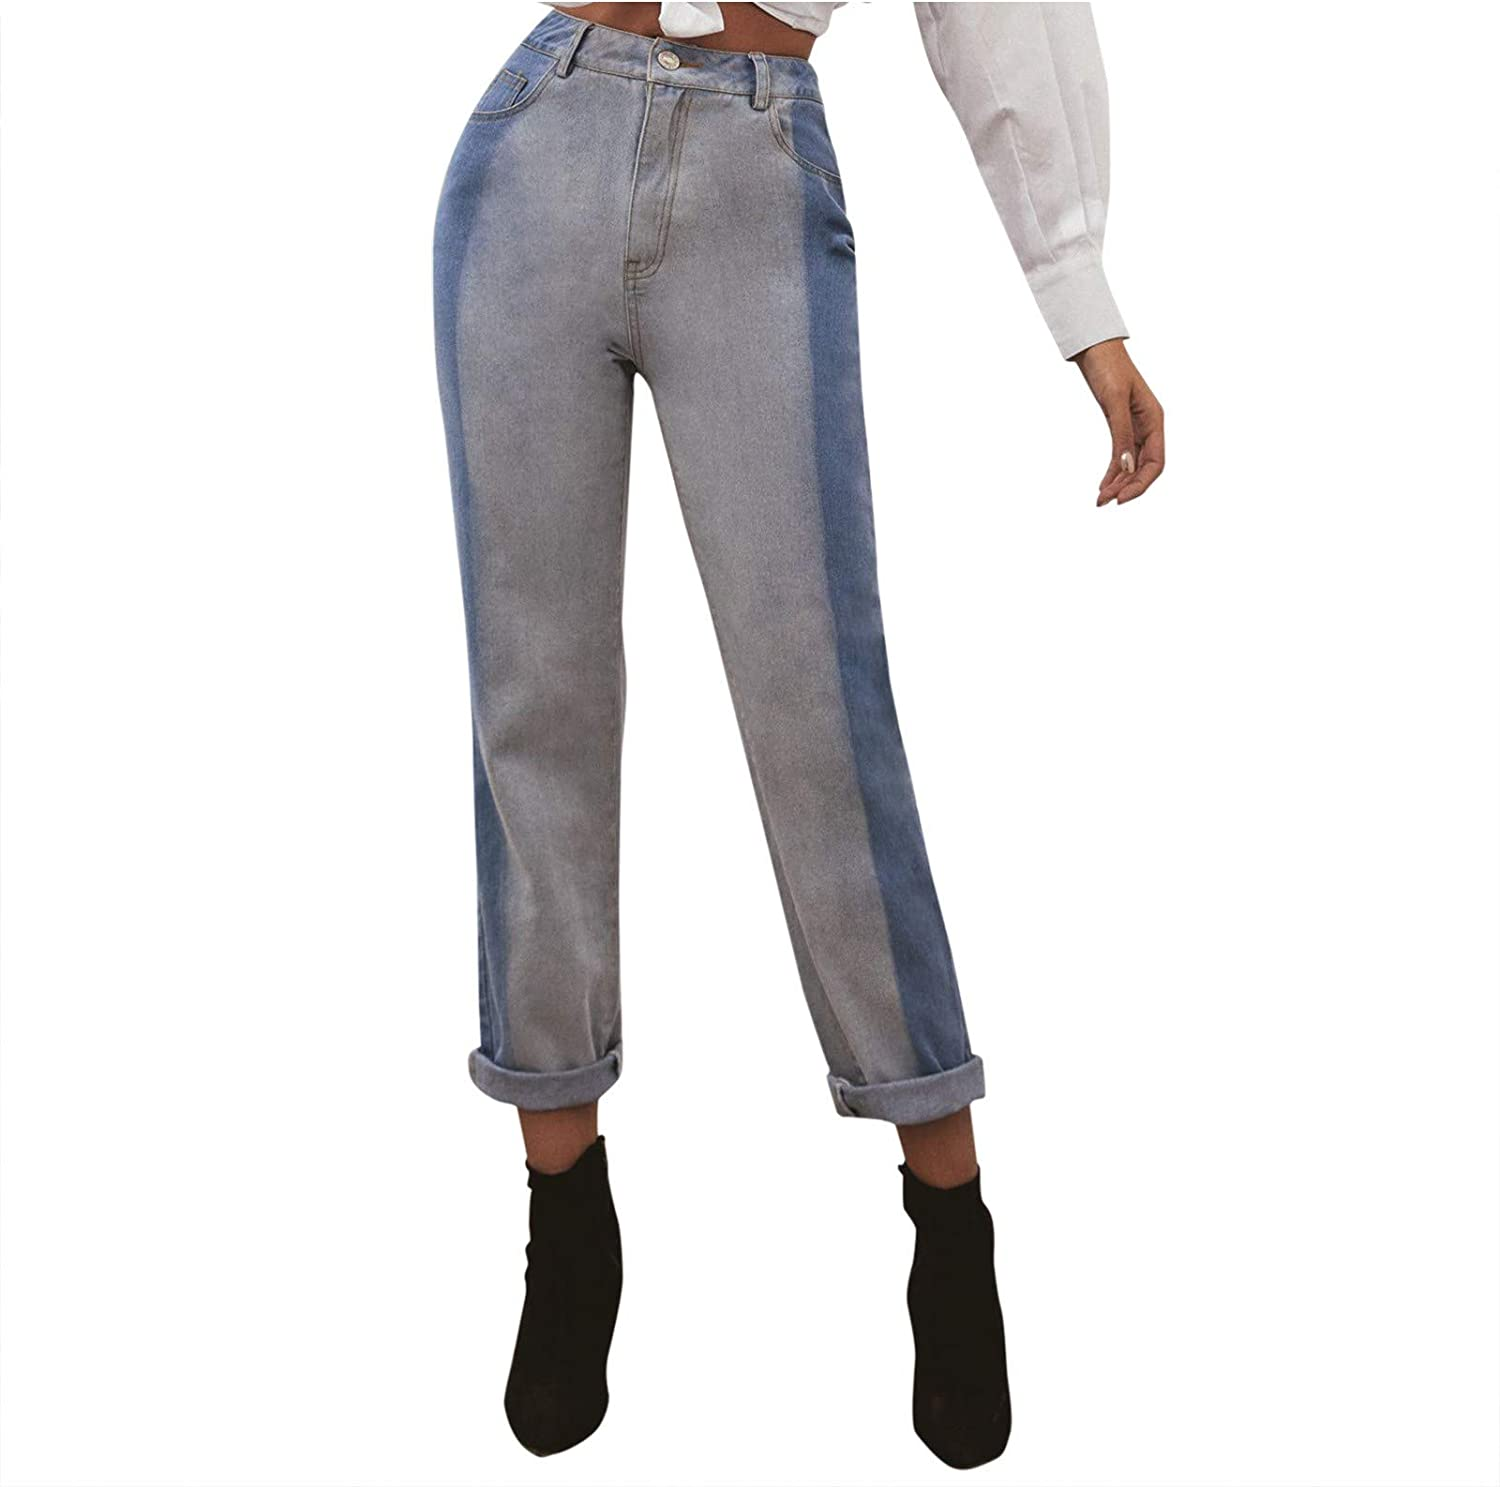 Fankle Casual Womens Tie Dye Distressed Denim Pants Hight Waisted Loose Jeans